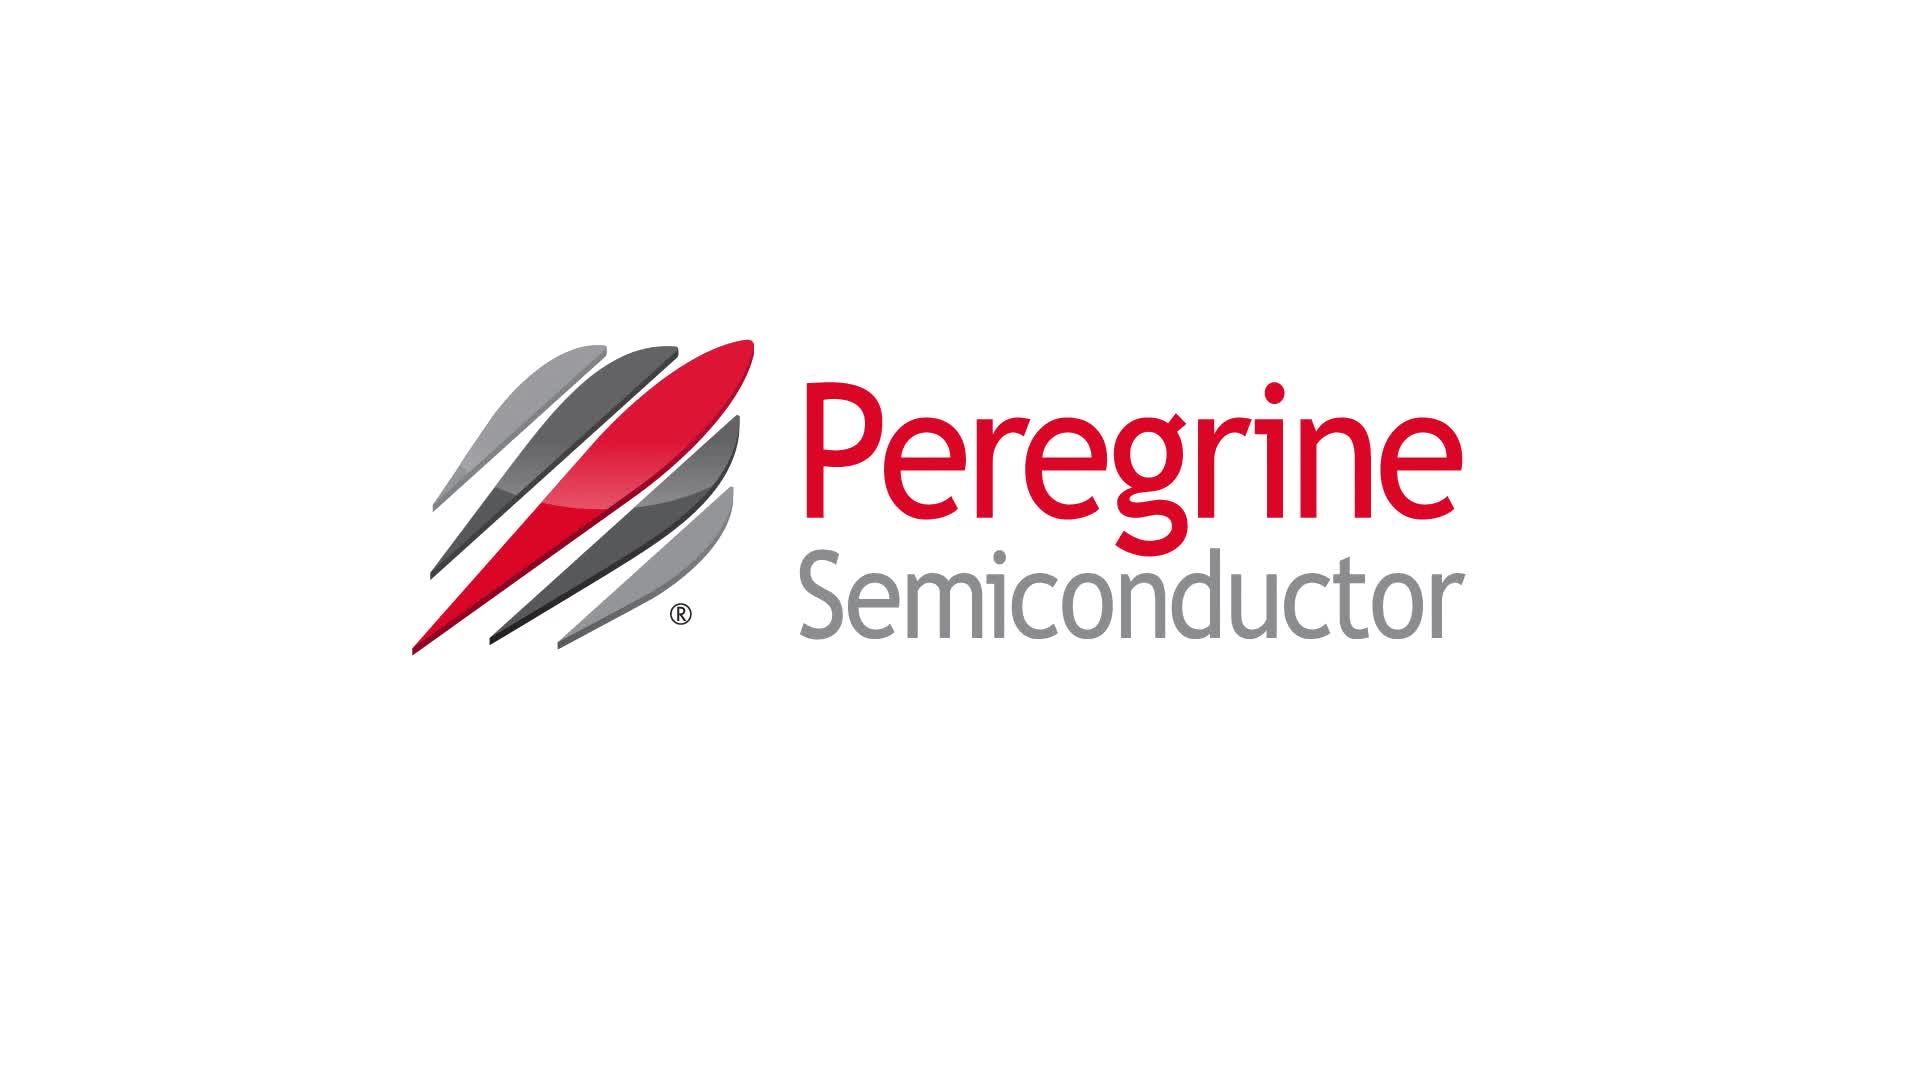 Peregrine Semiconductor's new UltraCMOS(R) True DC RF switch, PE42020, is the industry's first and only RF integrated switch to operate from DC to 8 GHz.